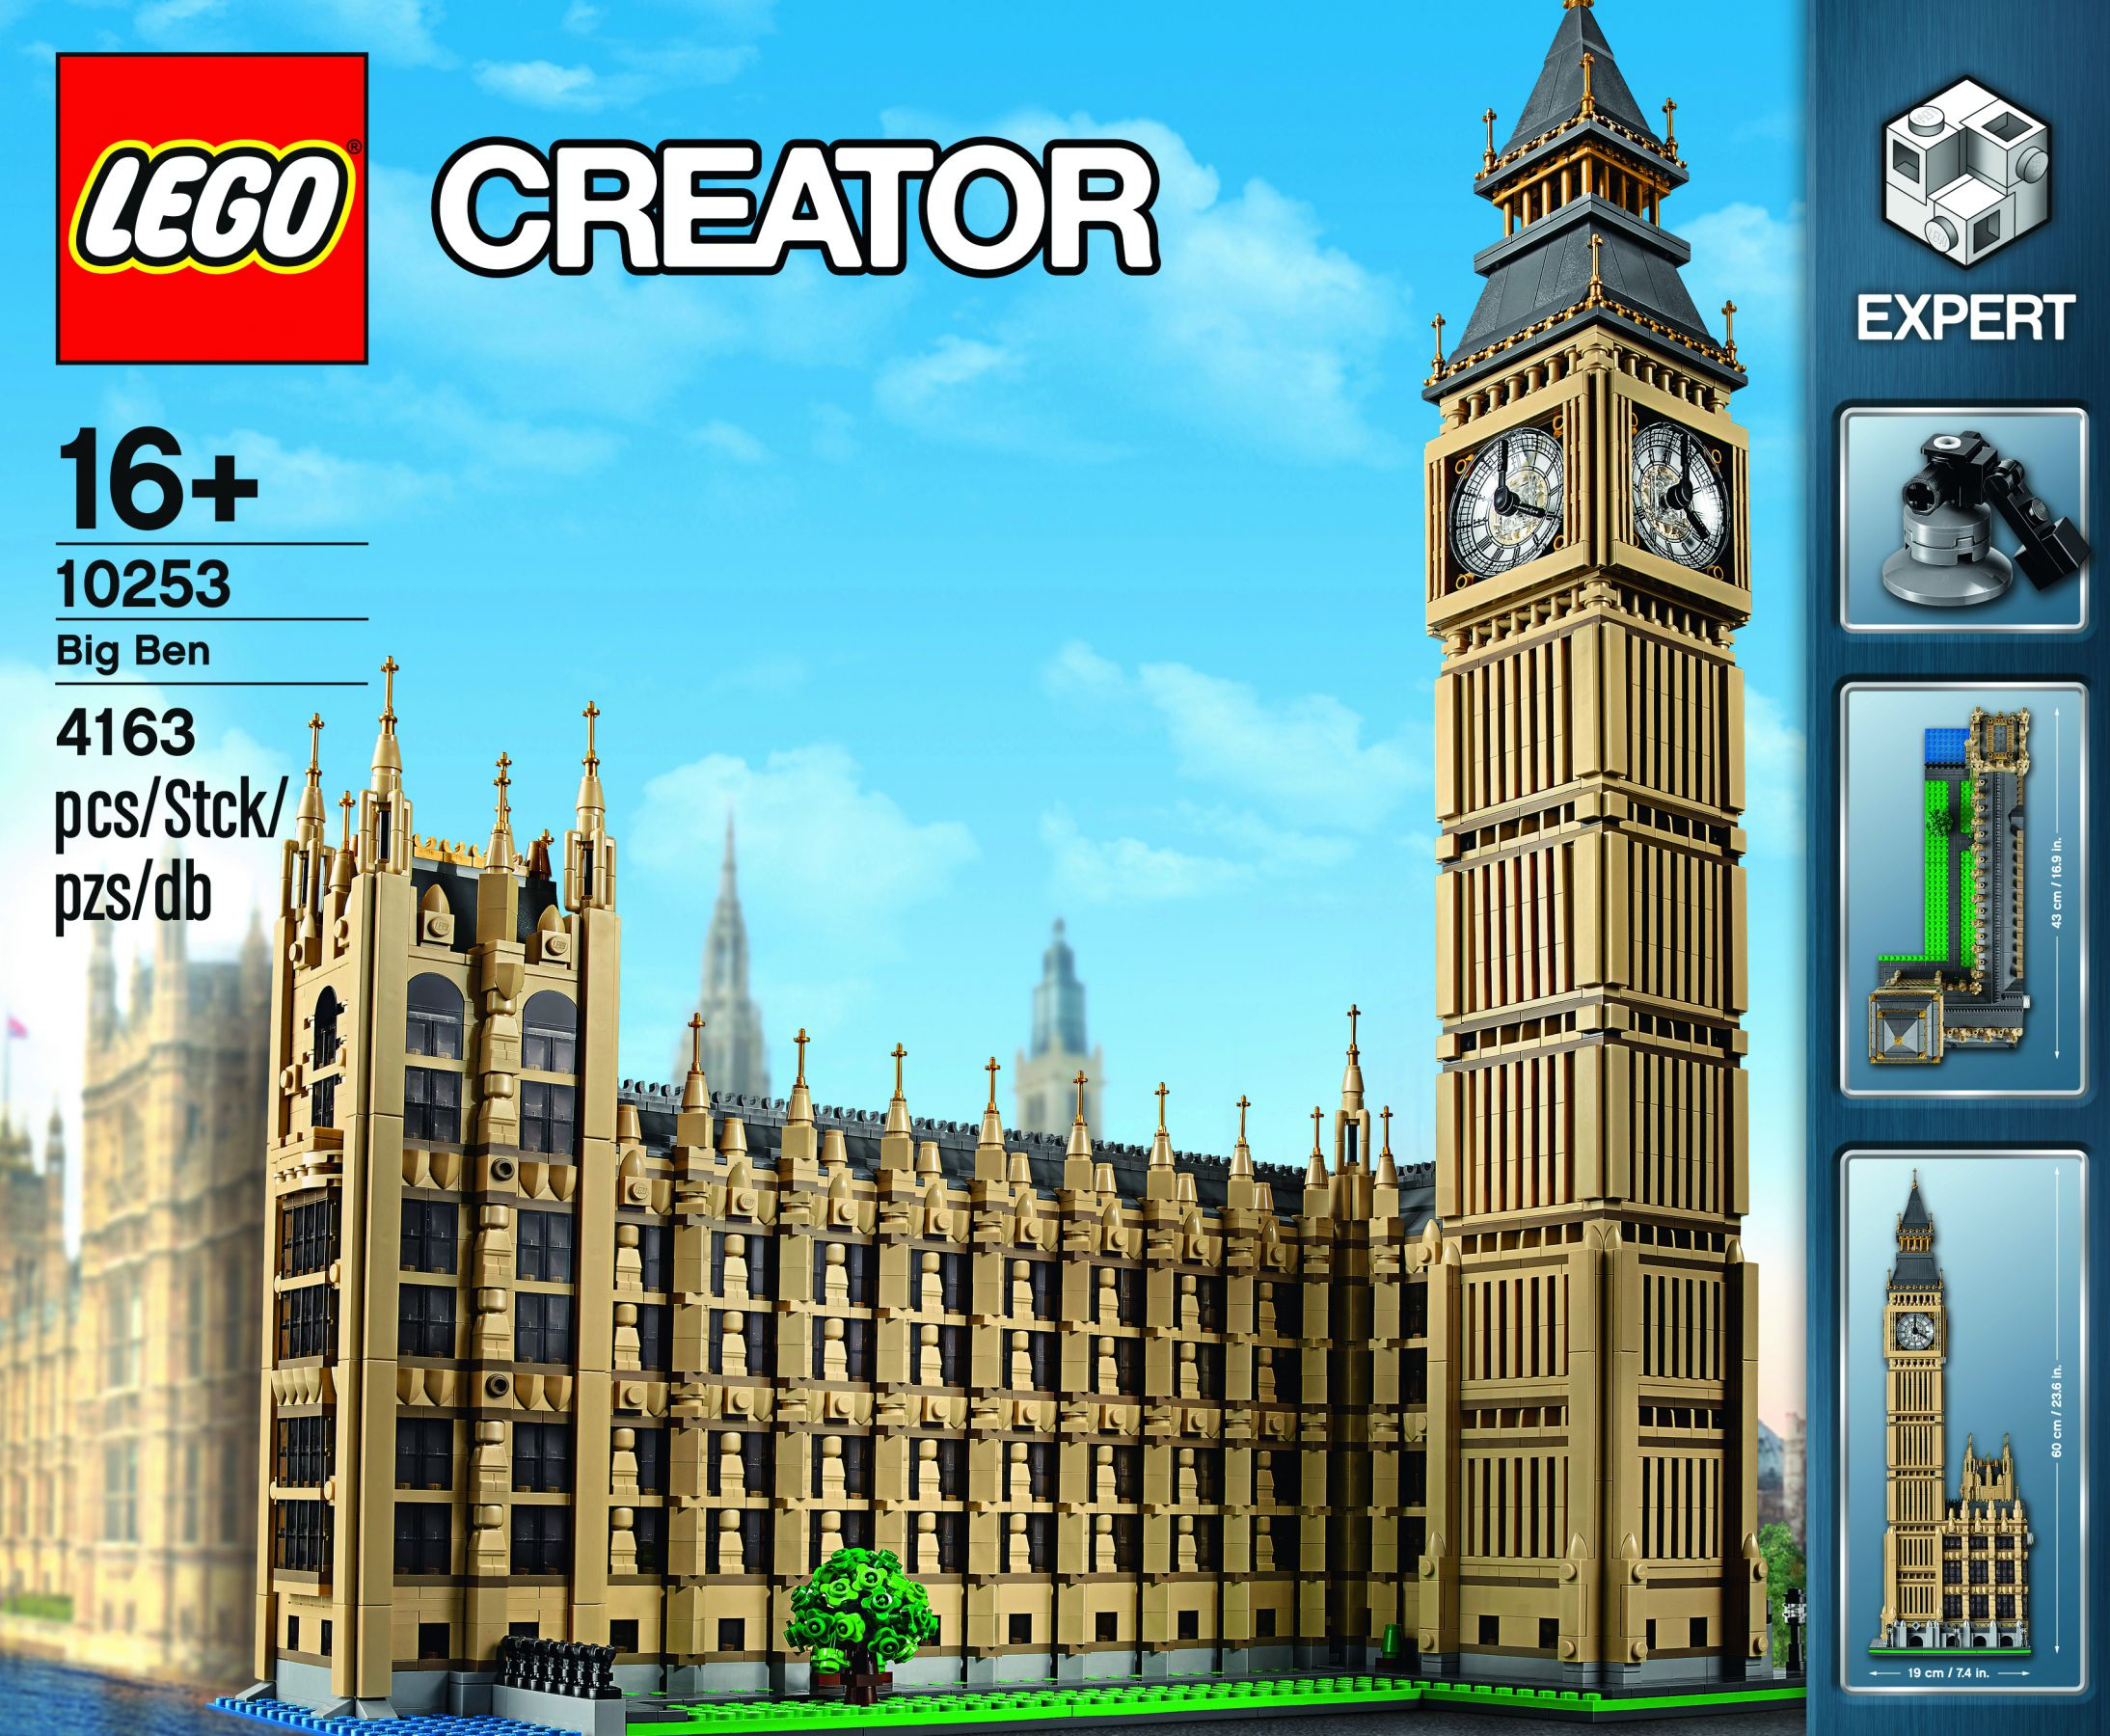 LEGO Advanced Models 10253 Big Ben LEGO_Creator_Big_Ben_10253-3.jpg